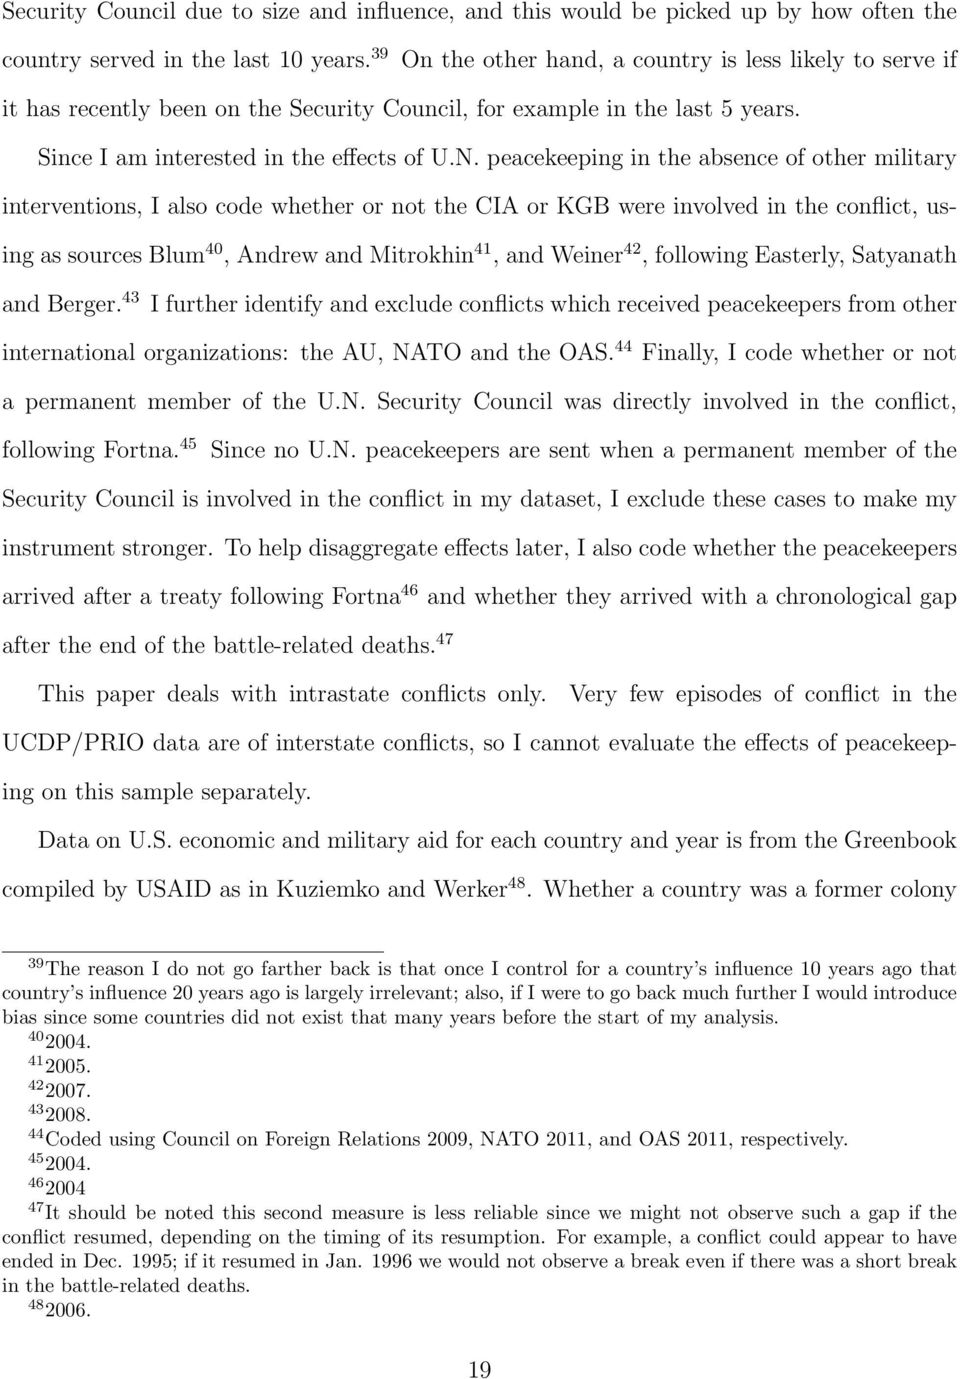 peacekeeping in the absence of other military interventions, I also code whether or not the CIA or KGB were involved in the conflict, using as sources Blum 40, Andrew and Mitrokhin 41, and Weiner 42,